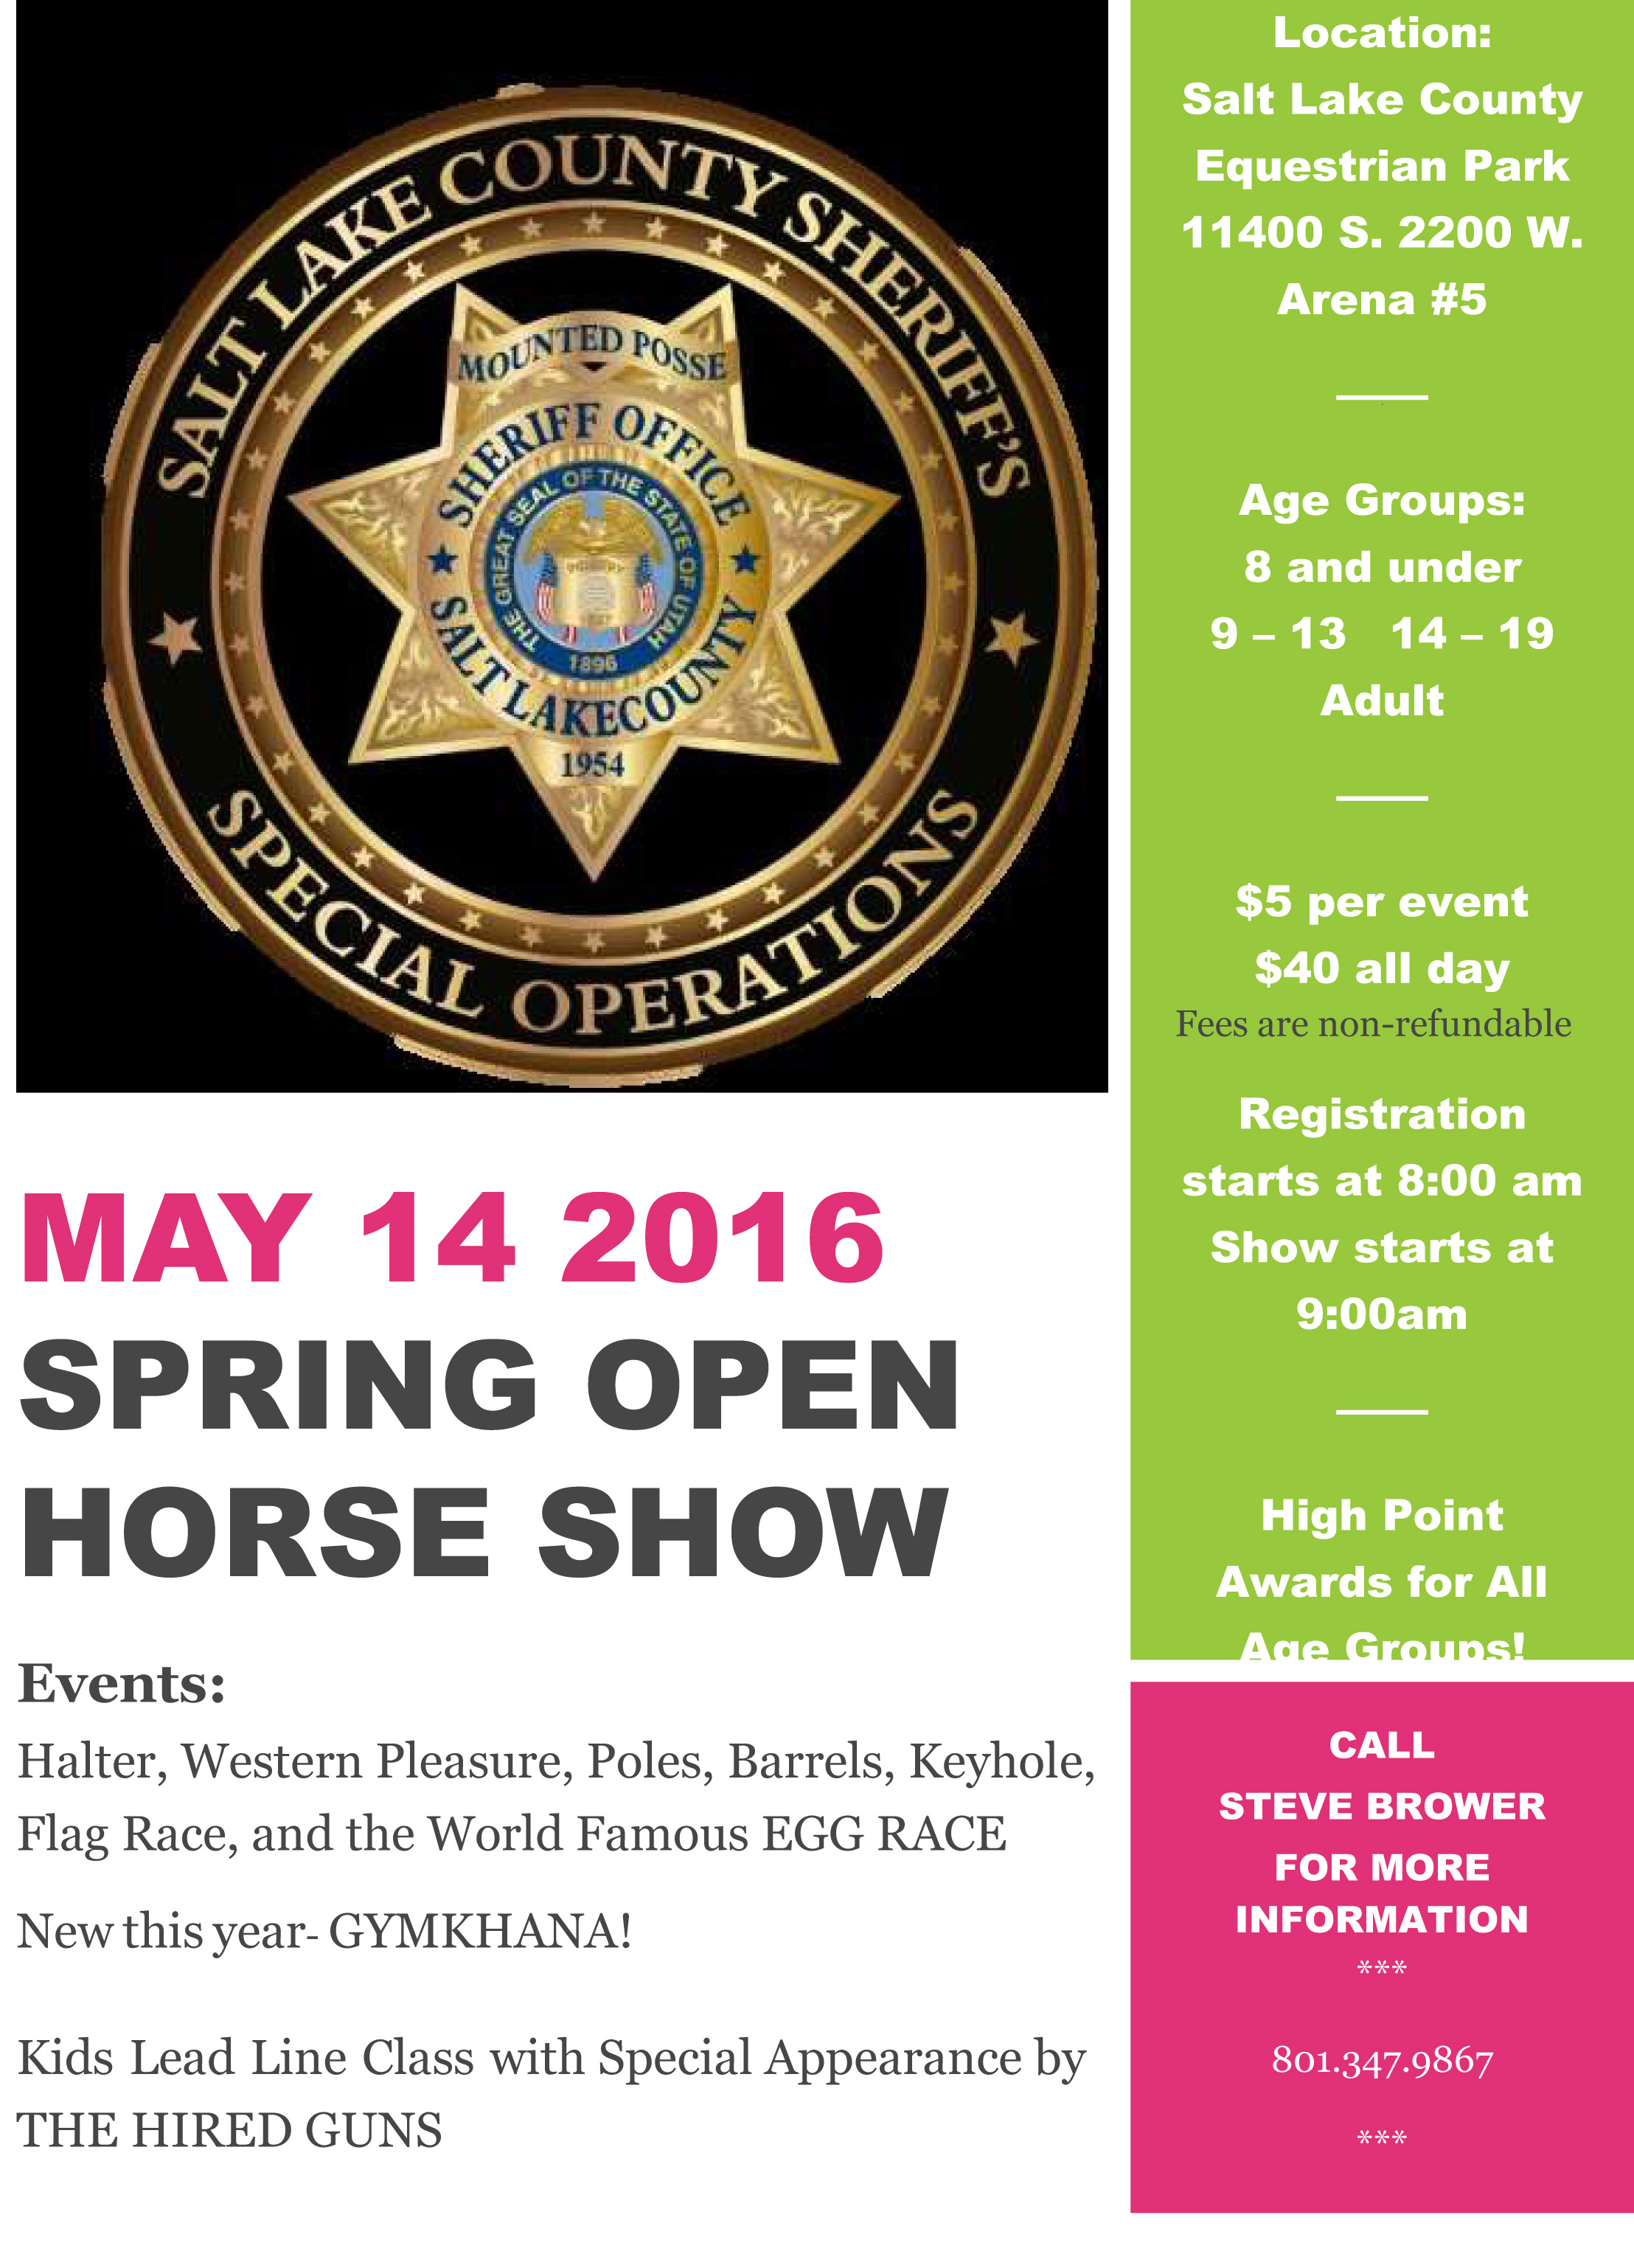 Spring Open Horse Show - Book Signing Event